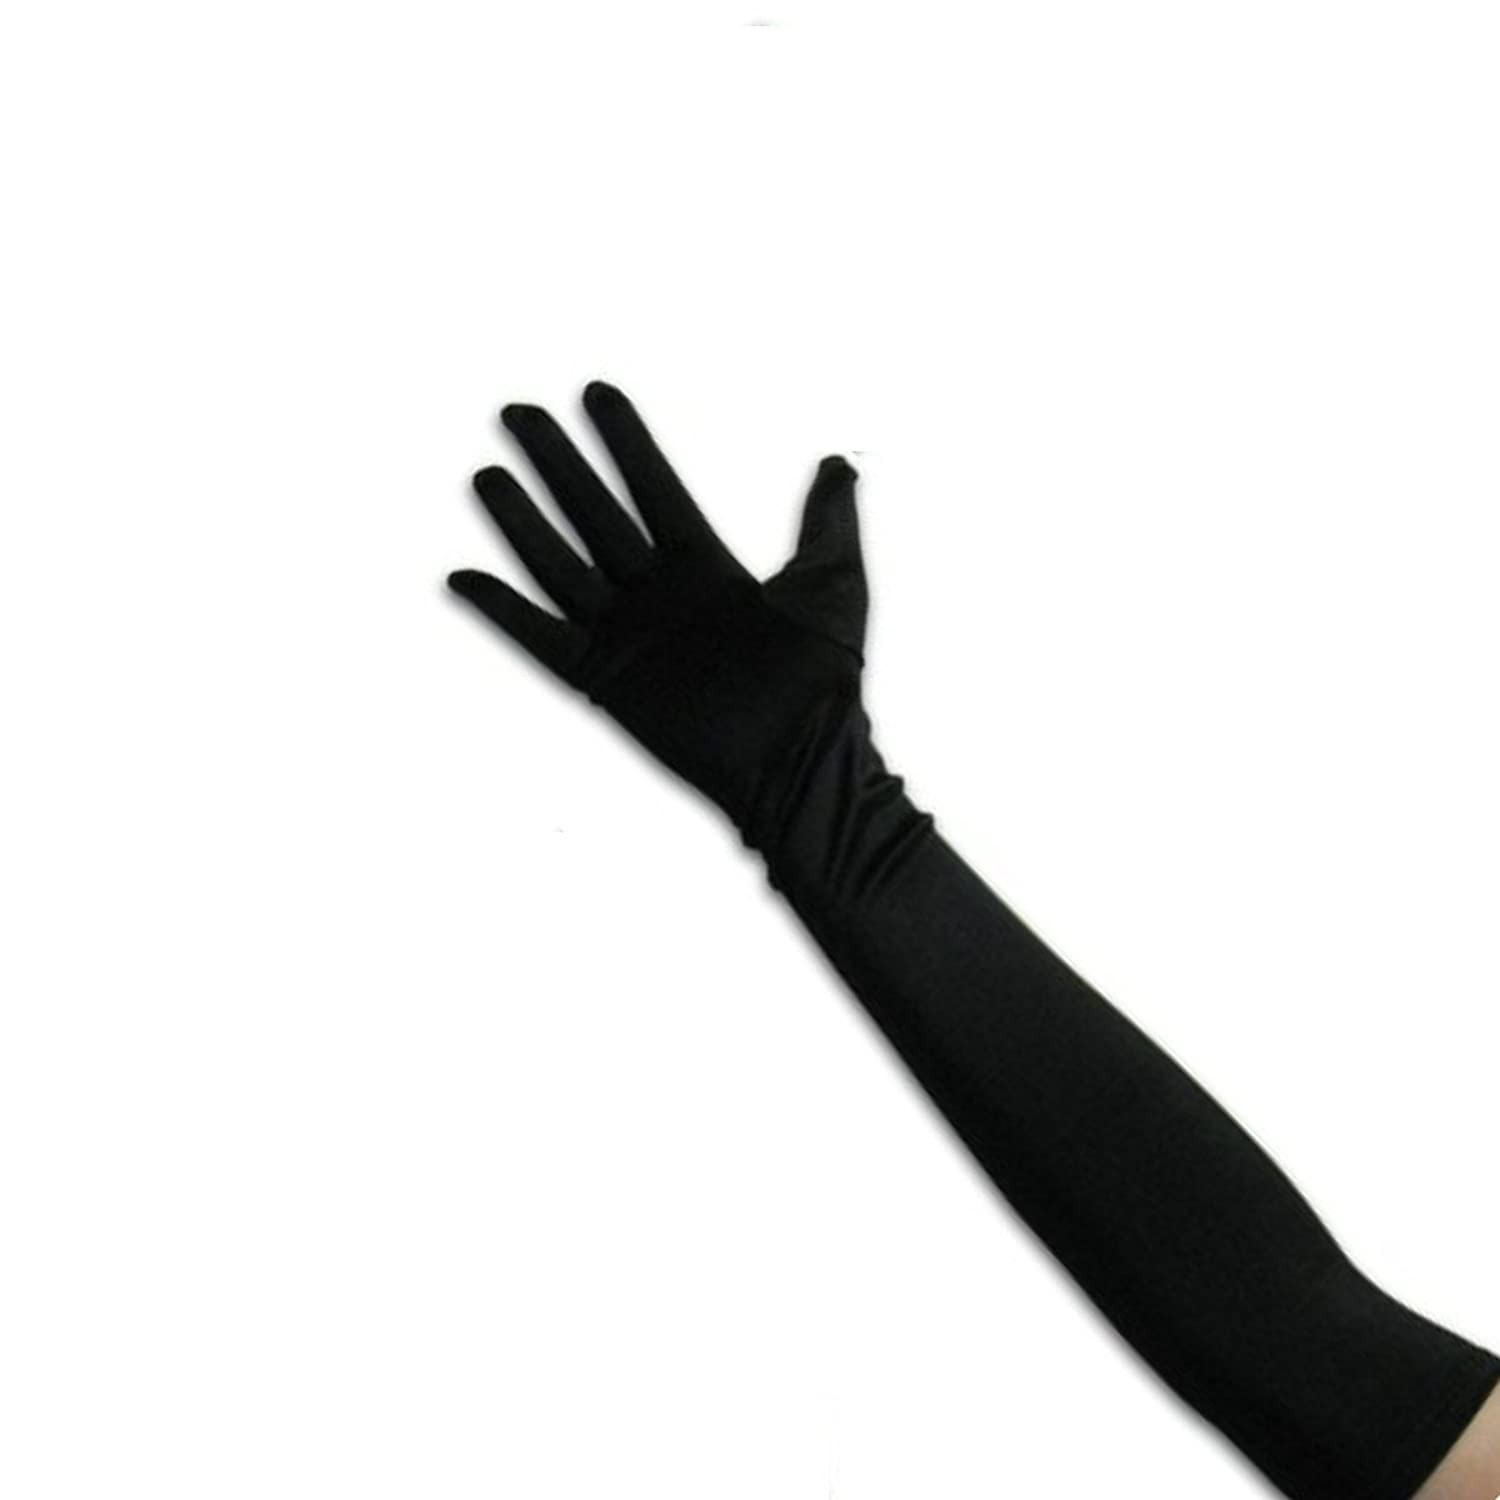 Victorian Costumes: Dresses, Saloon Girls, Southern Belle, Witch Tapp Collections™ Classic Adult Size Long Opera/Elbow/Wrist Length Satin Gloves $10.99 AT vintagedancer.com